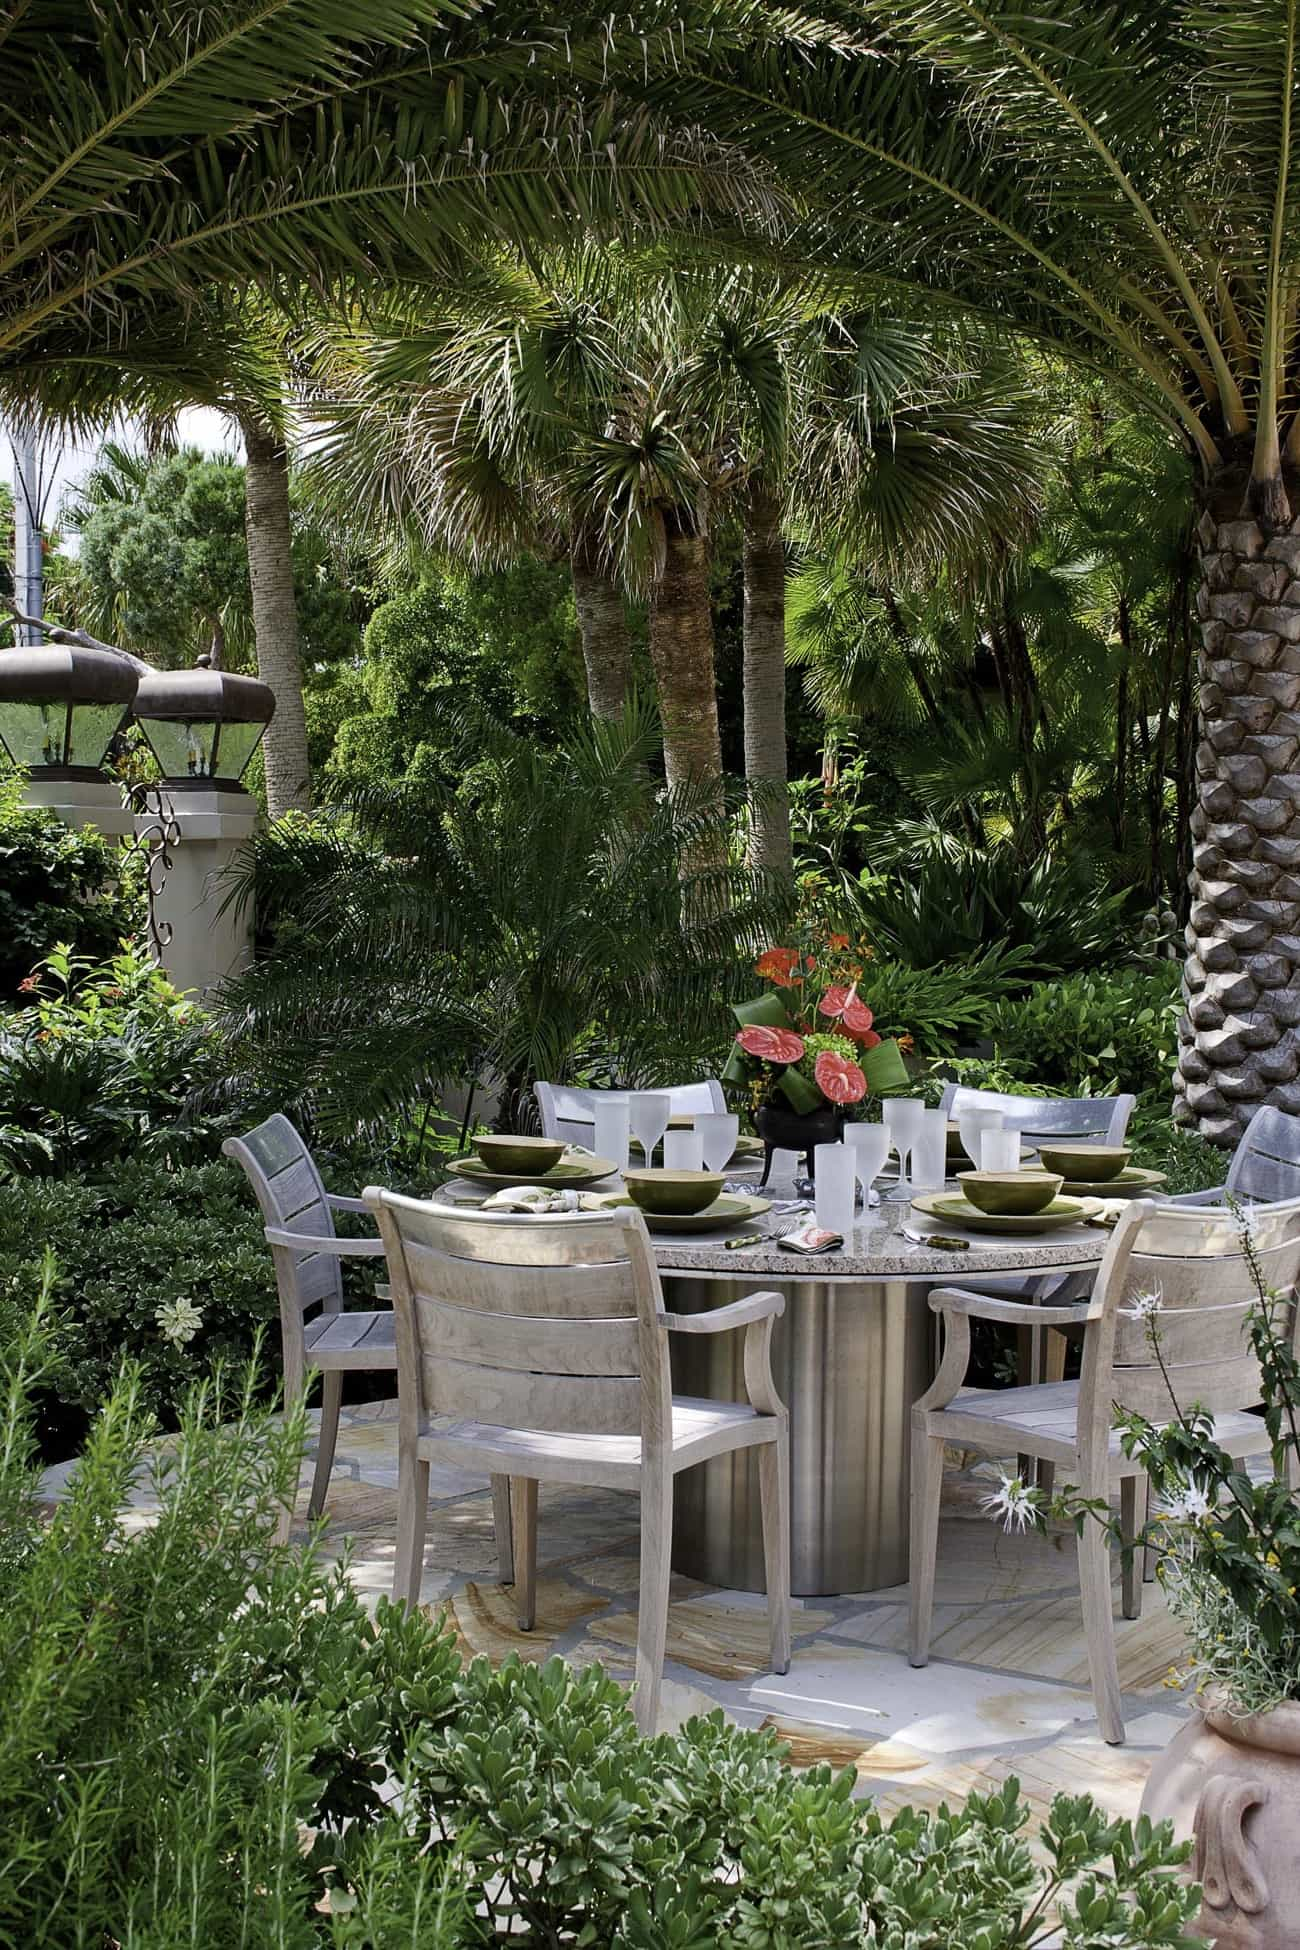 Romantic Outdoor Dining Table Under Palm Trees (View 6 of 8)